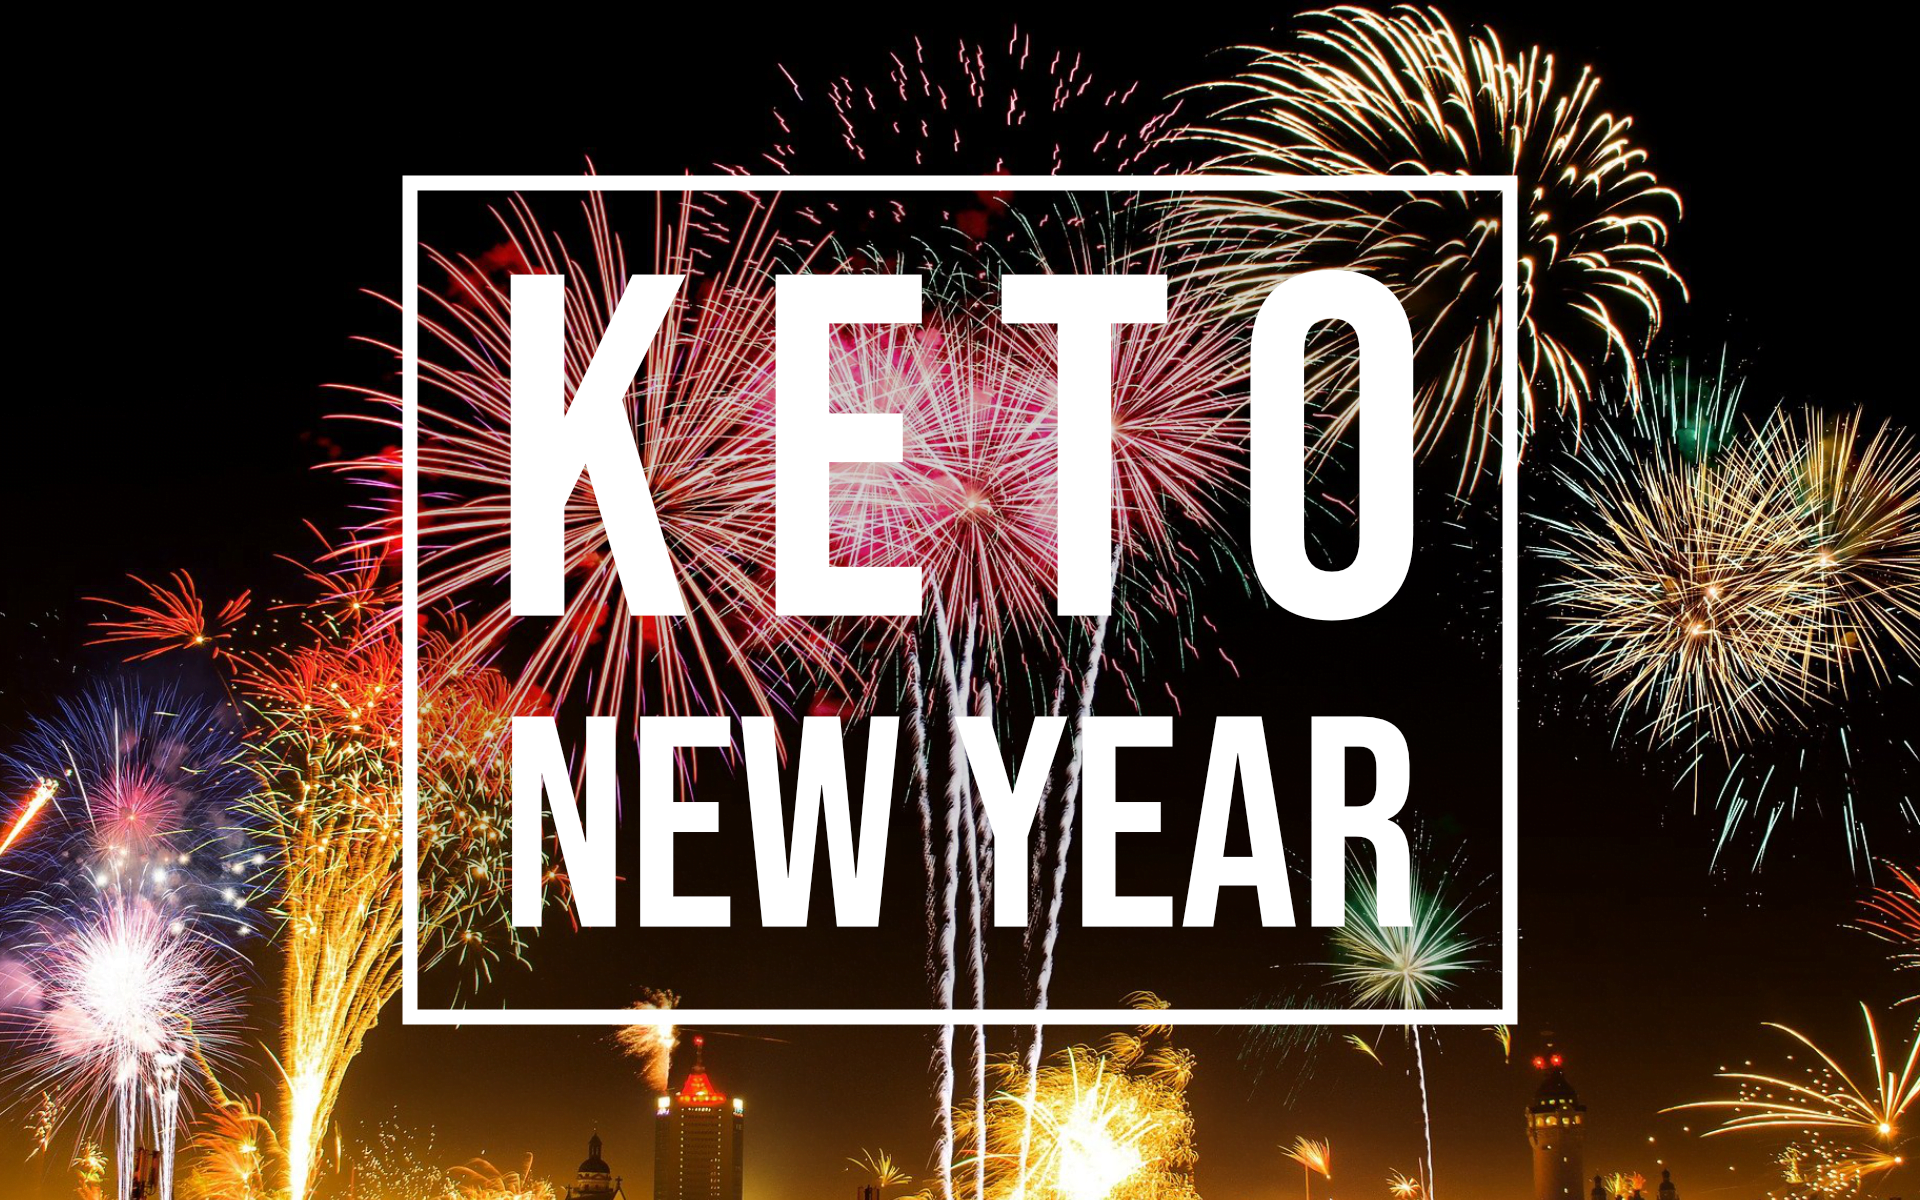 keto new year's resolutions